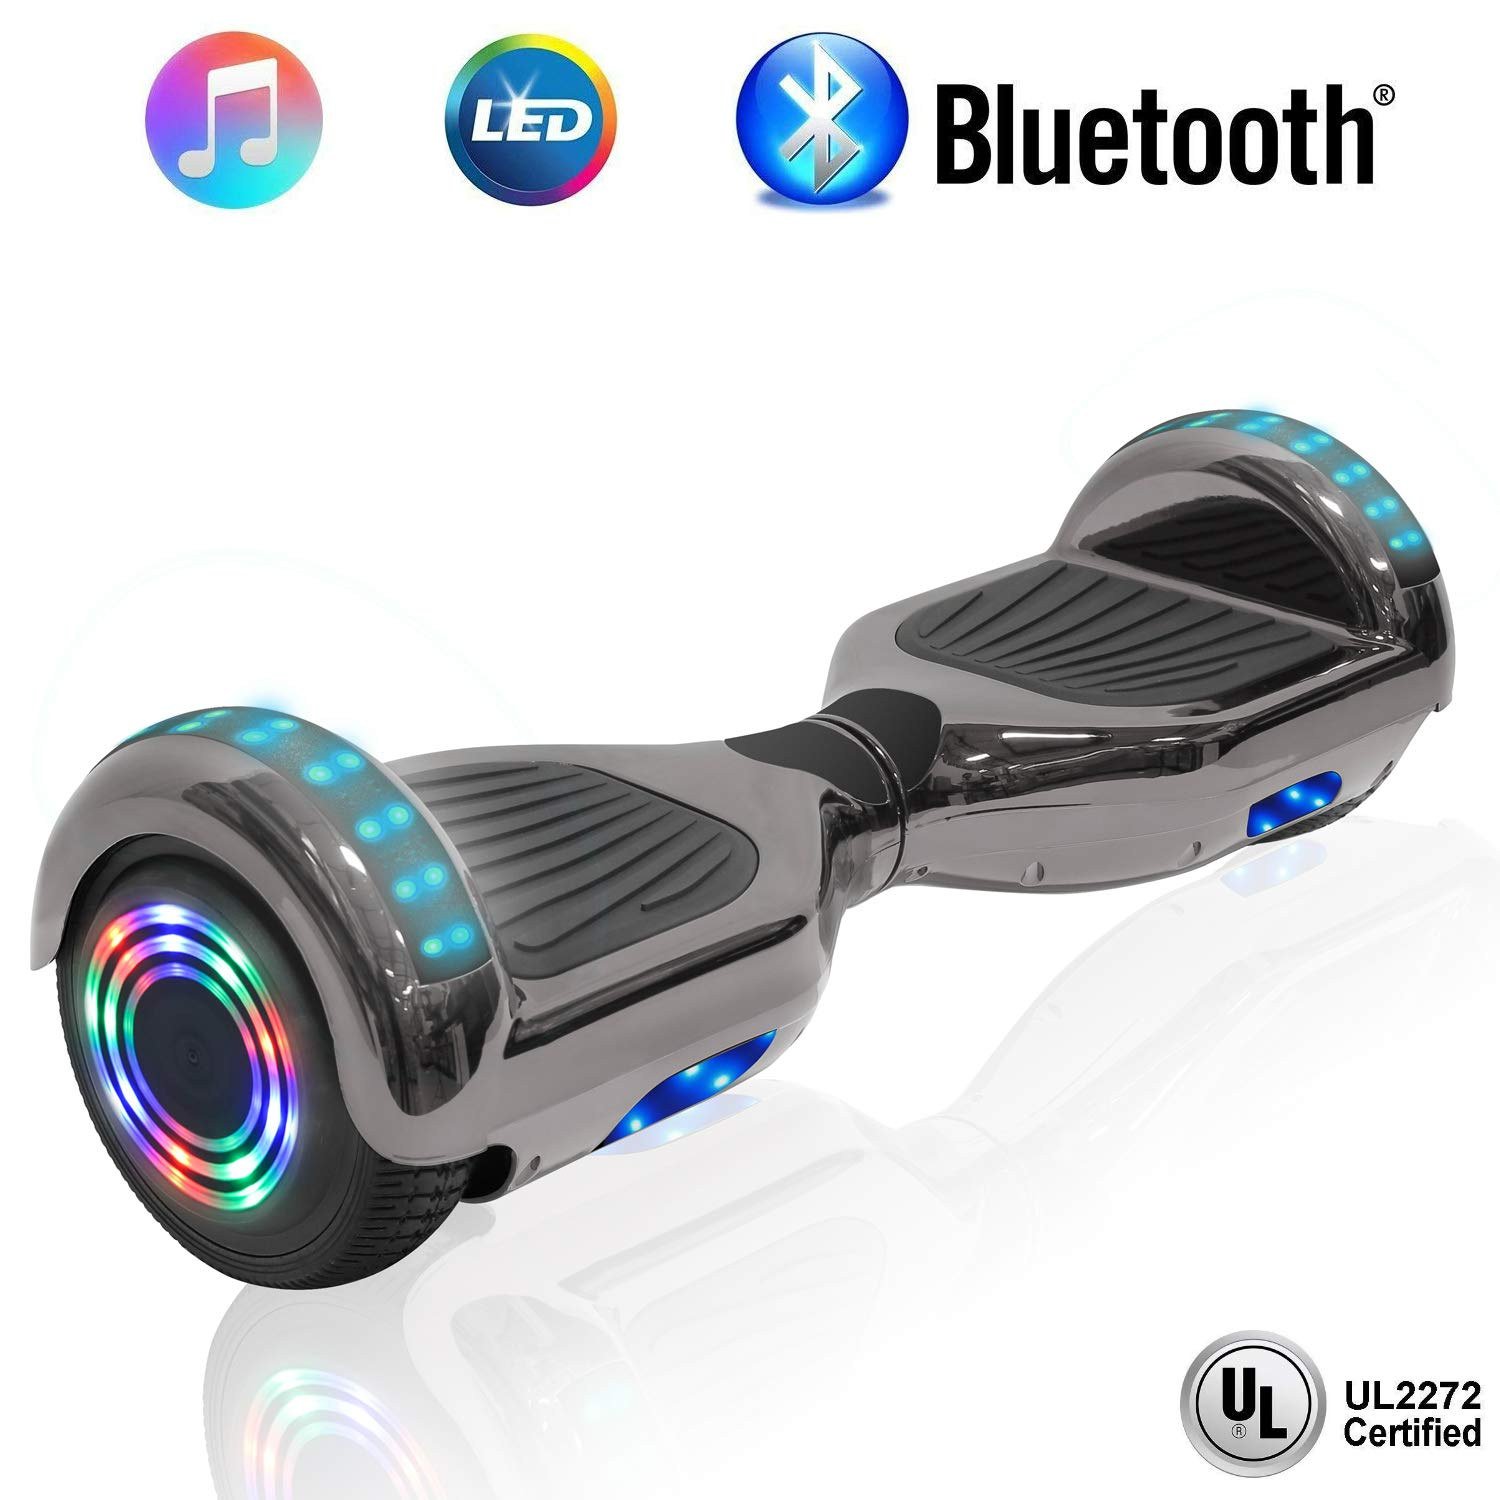 NHT 6.5'' Hoverboard Electric Self Balancing Scooter Sidelights - UL2272 Certified Black, Blue, Pink, Red, White (Chrome Black)